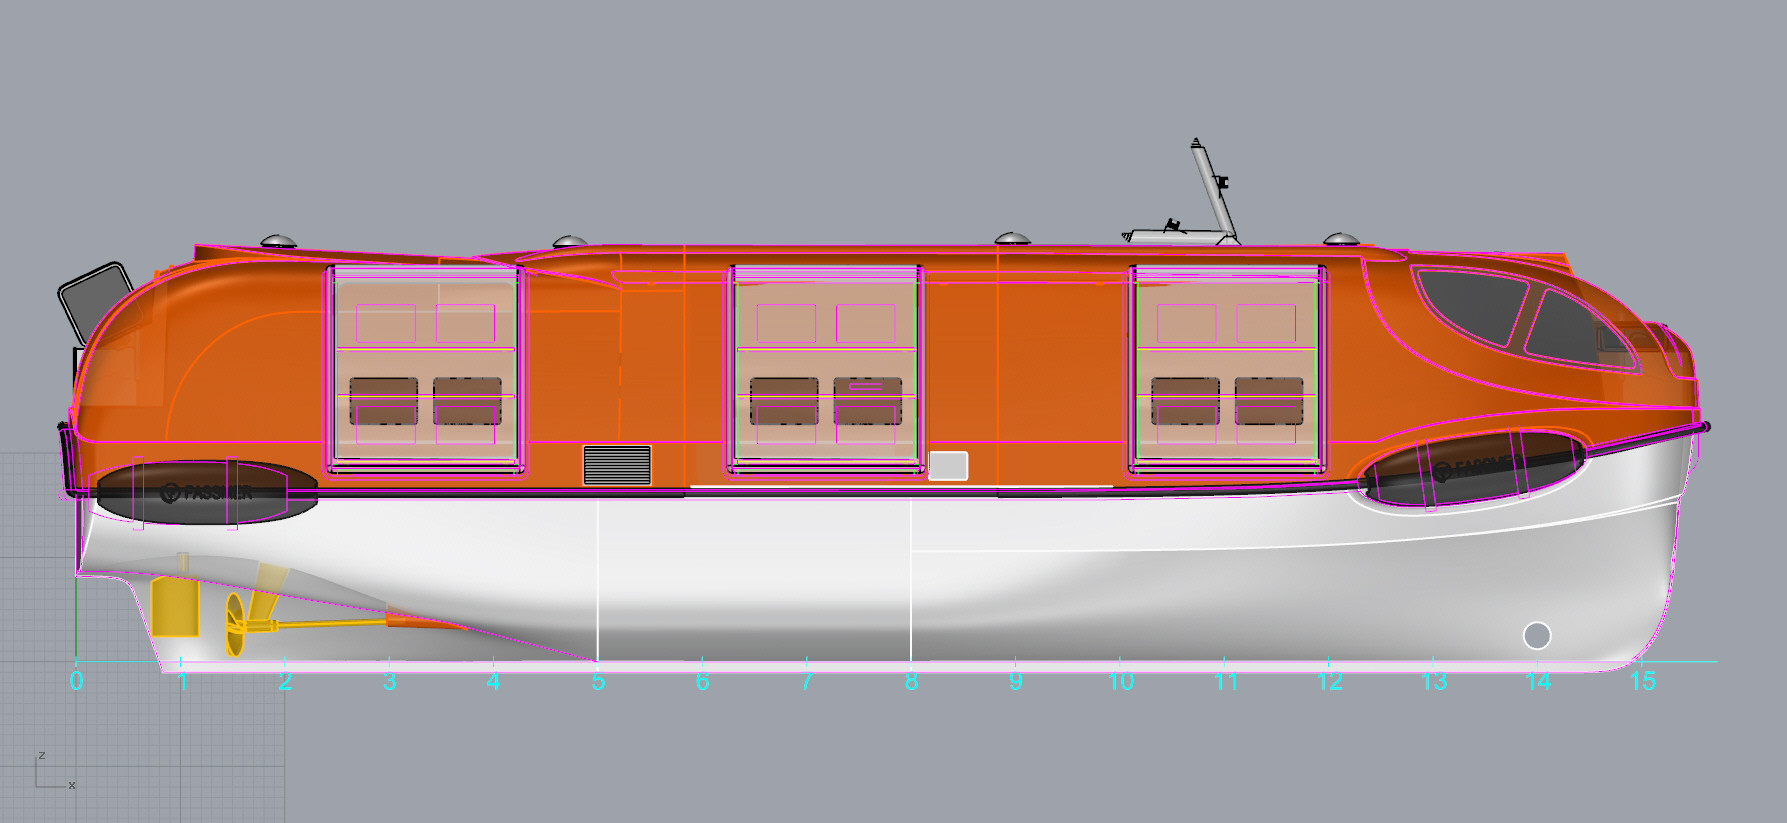 15.5 m SEL new superstructure surface, 3rd door inserted